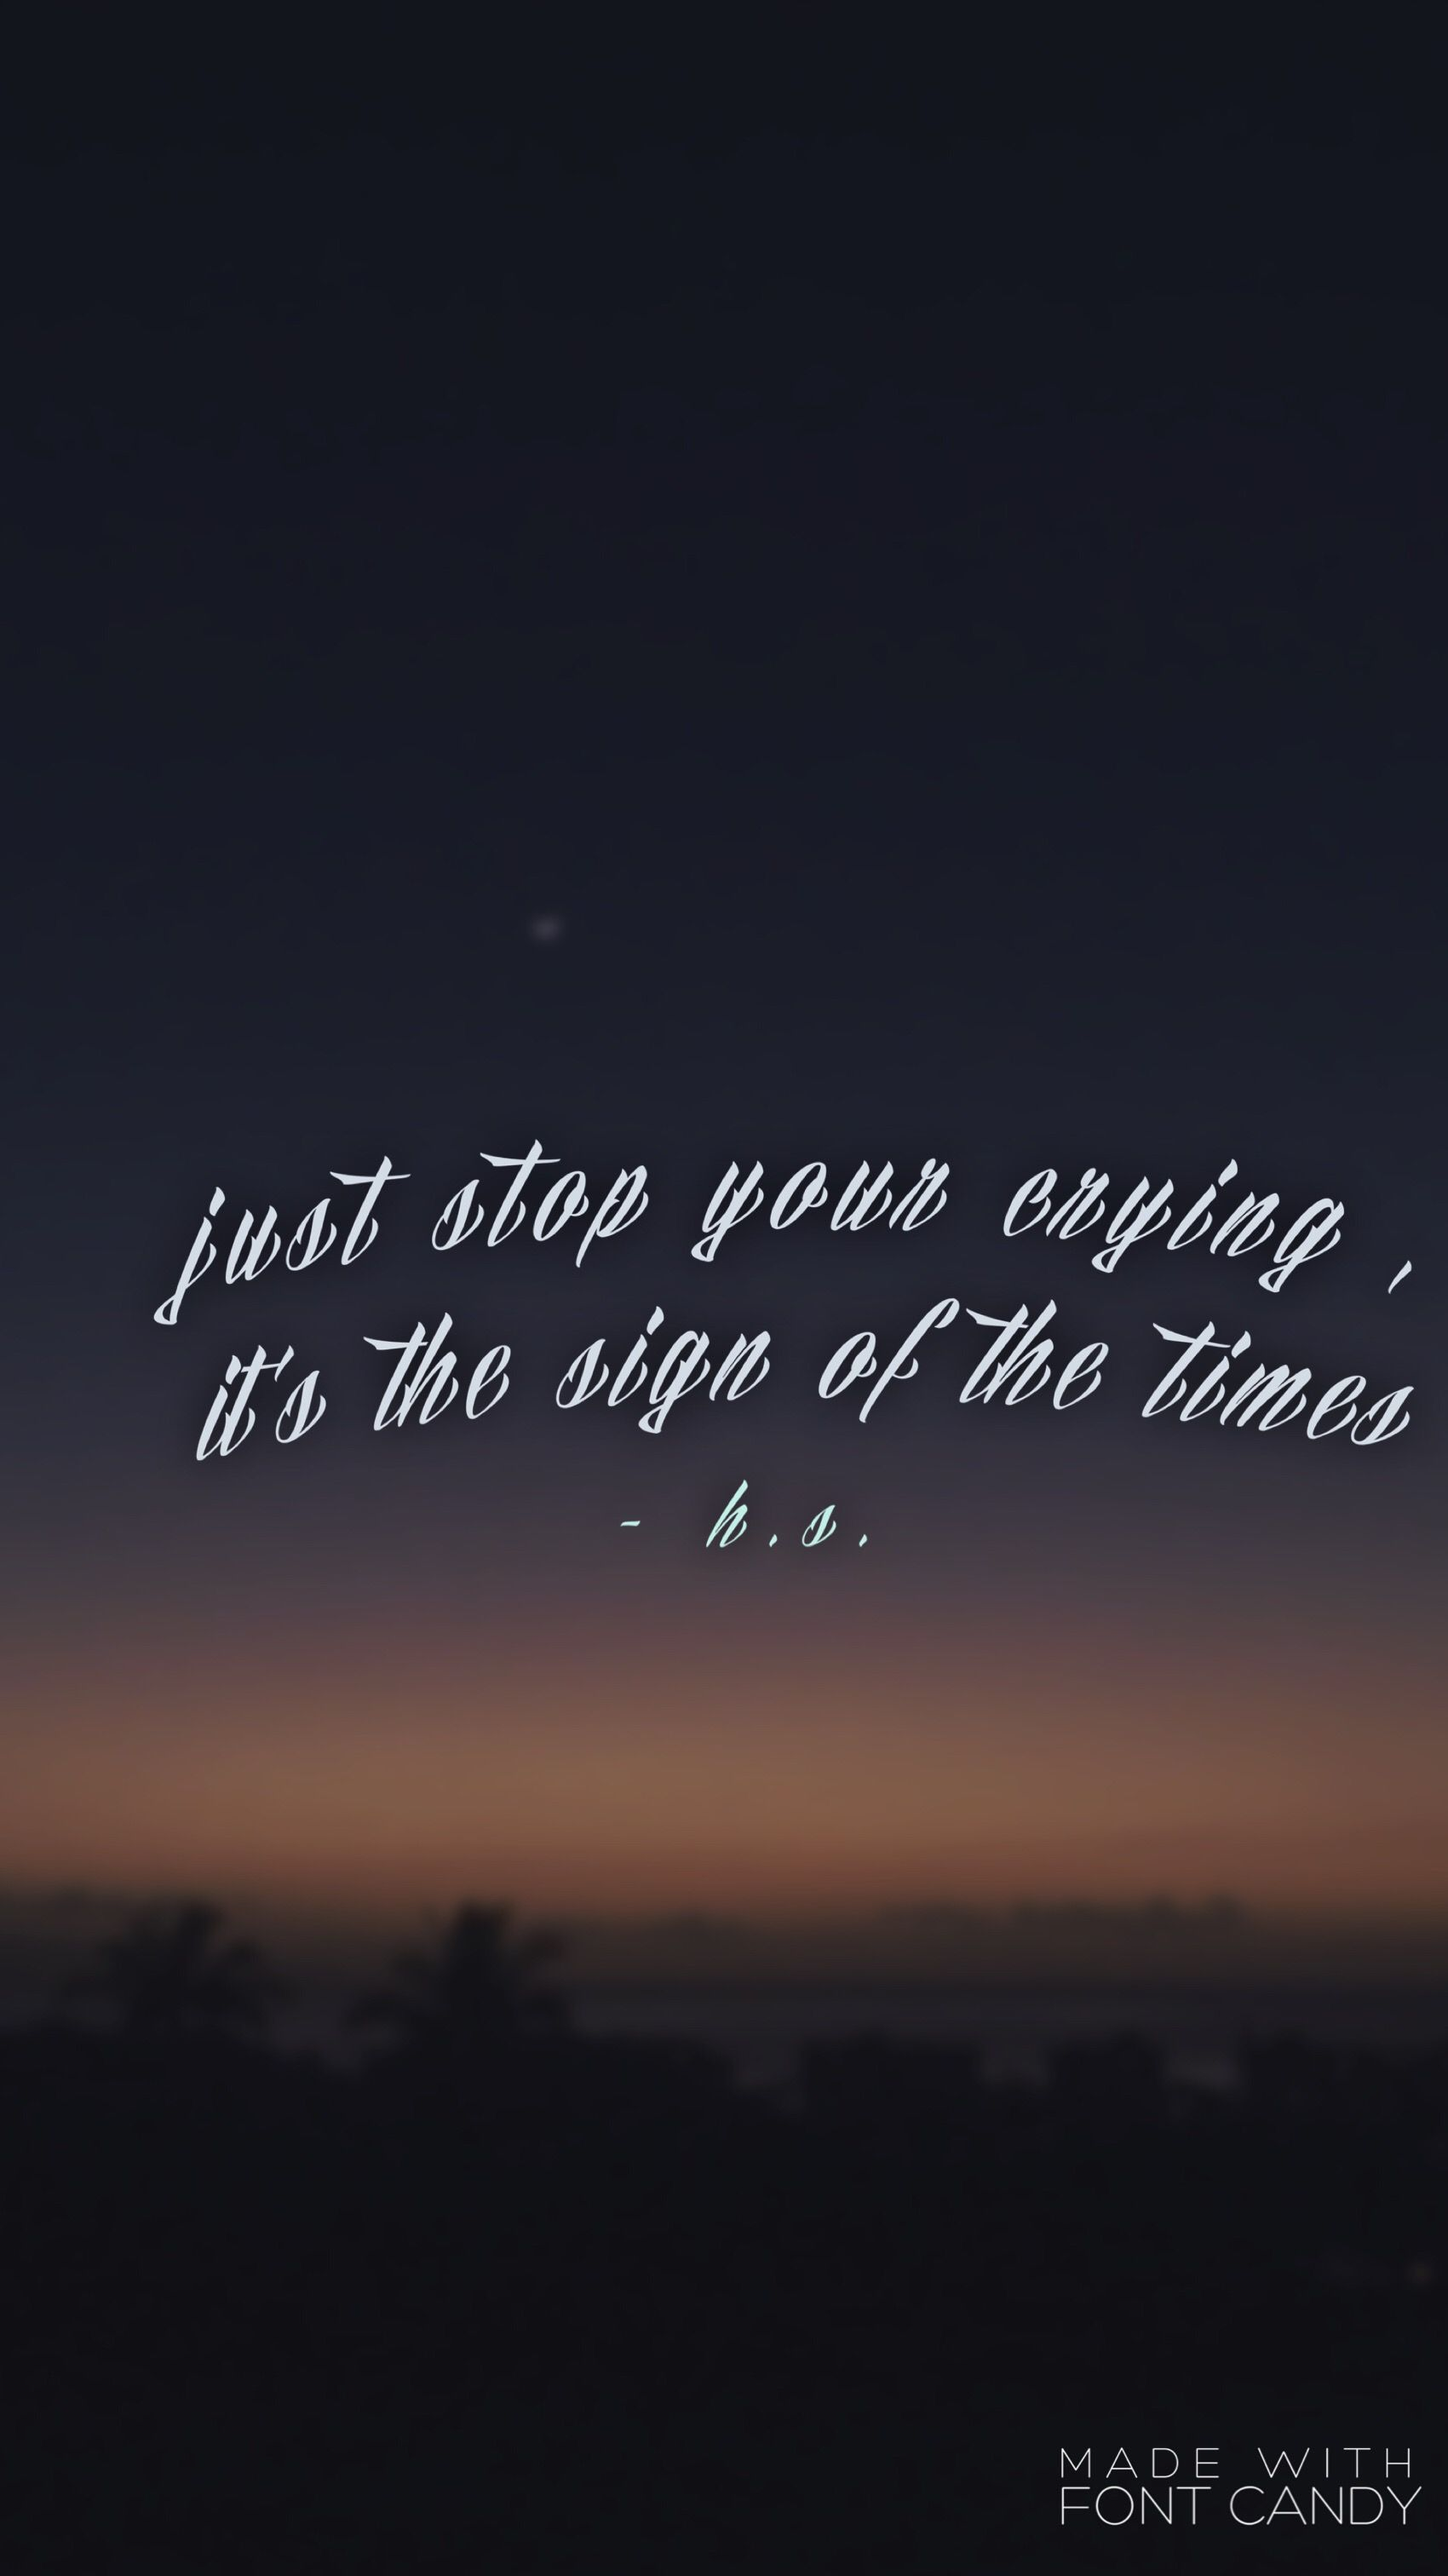 Sign Of The Times Harry Styles Style Lyrics Harry Styles Harry Styles Wallpaper